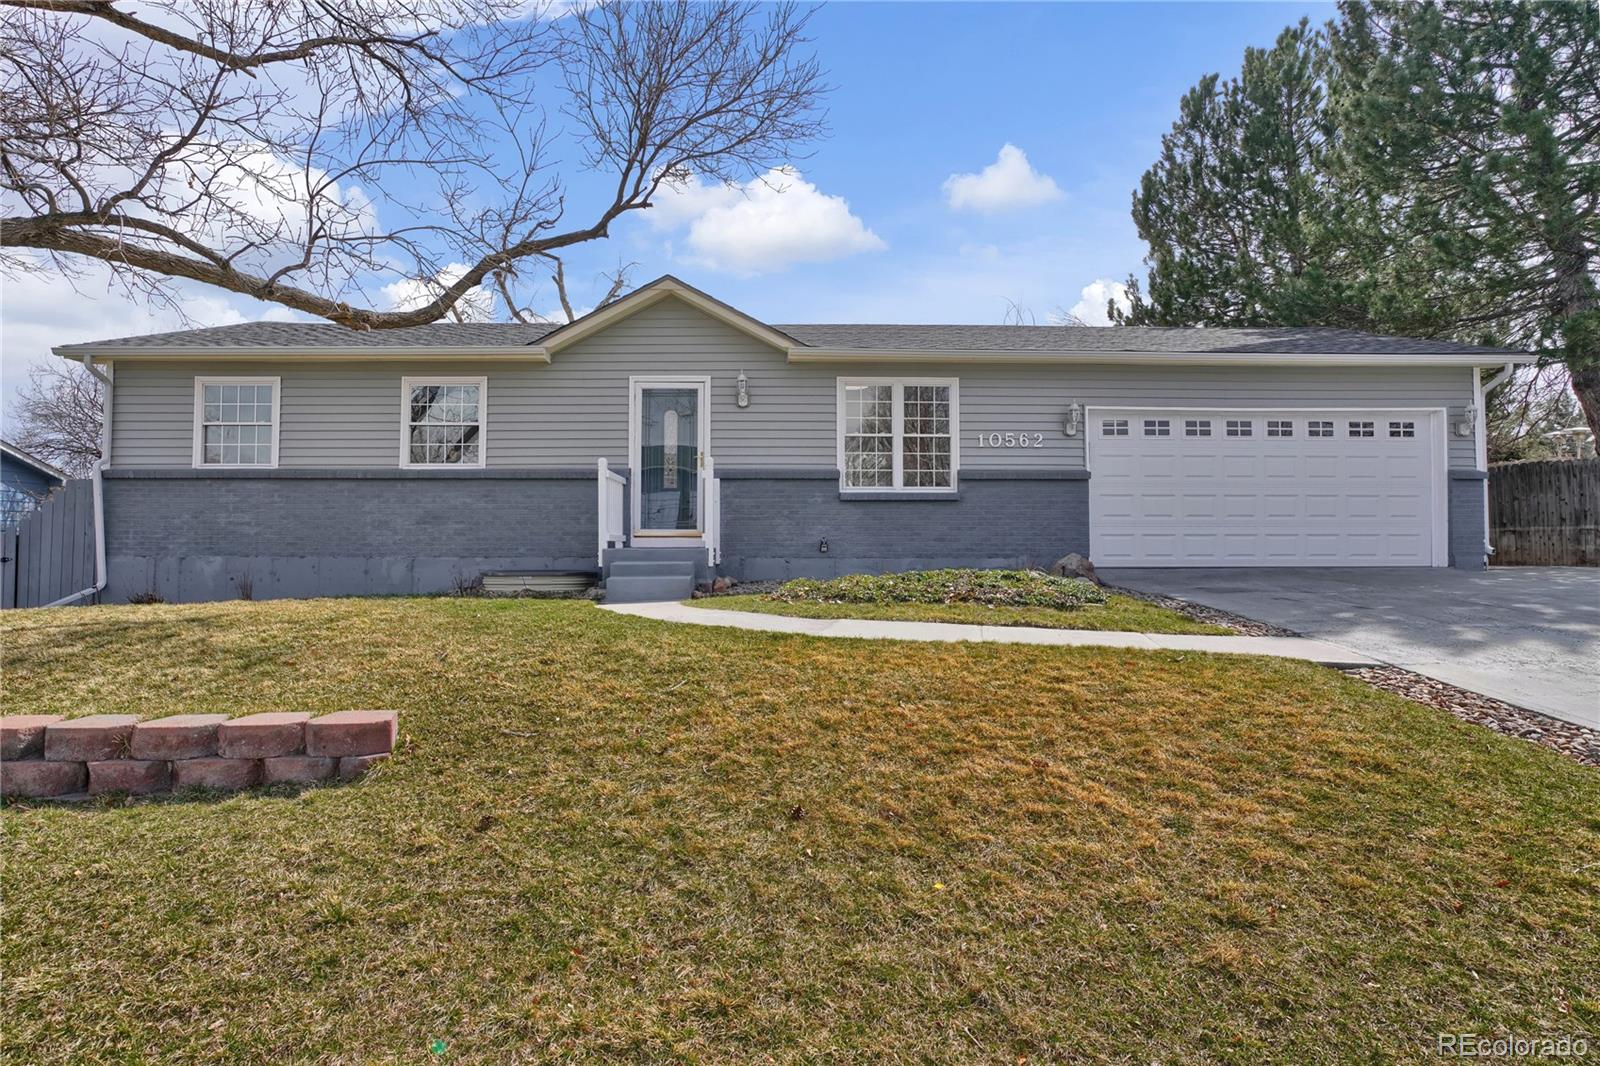 MLS# 8207467 - 2 - 10562 Parfet Court, Westminster, CO 80021